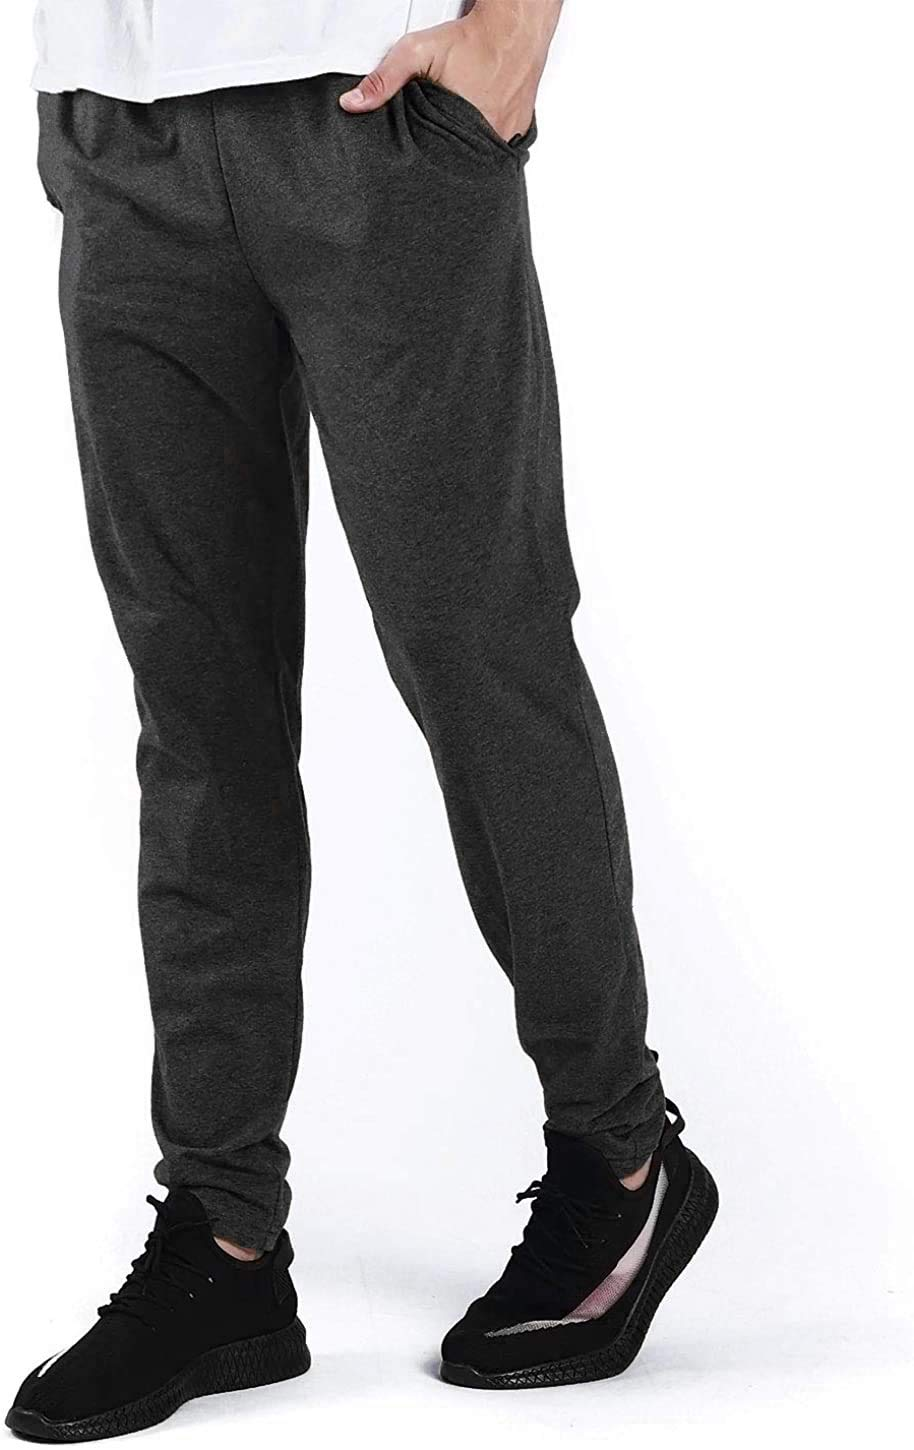 Ogeenier Men's Jogger Running Pants with Zipper Pockets - Athletic Workout Training & Gym Sweatpants